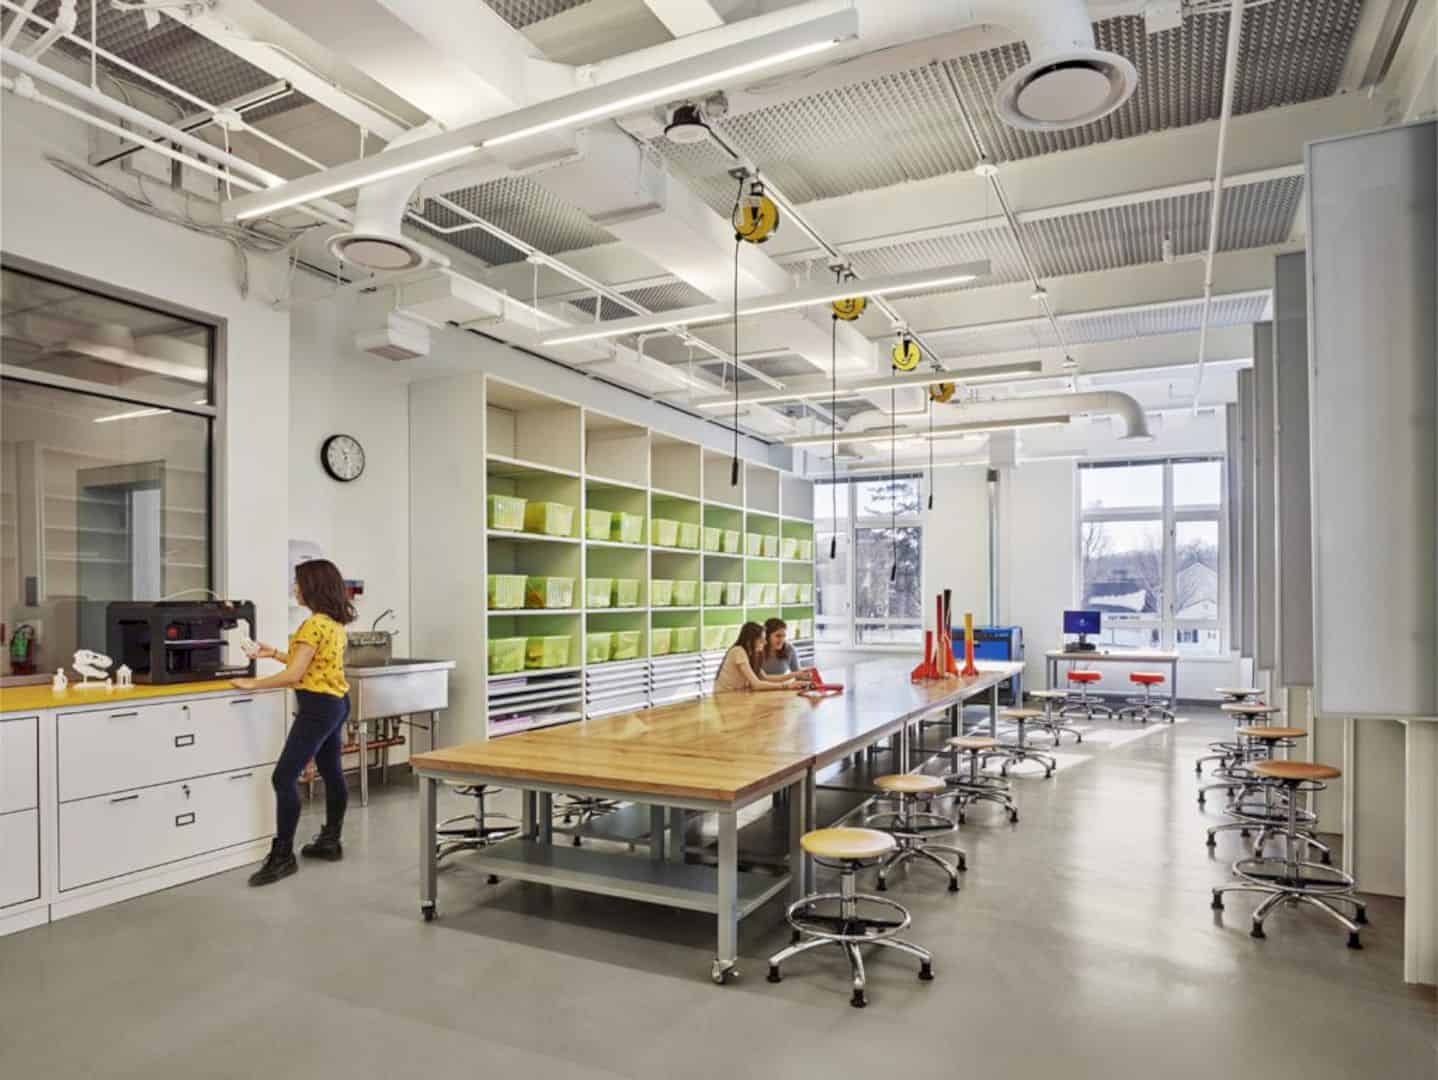 Germantown Academy Innovation Lab And Makerspace Featuring 21st Century Learning Environment 1